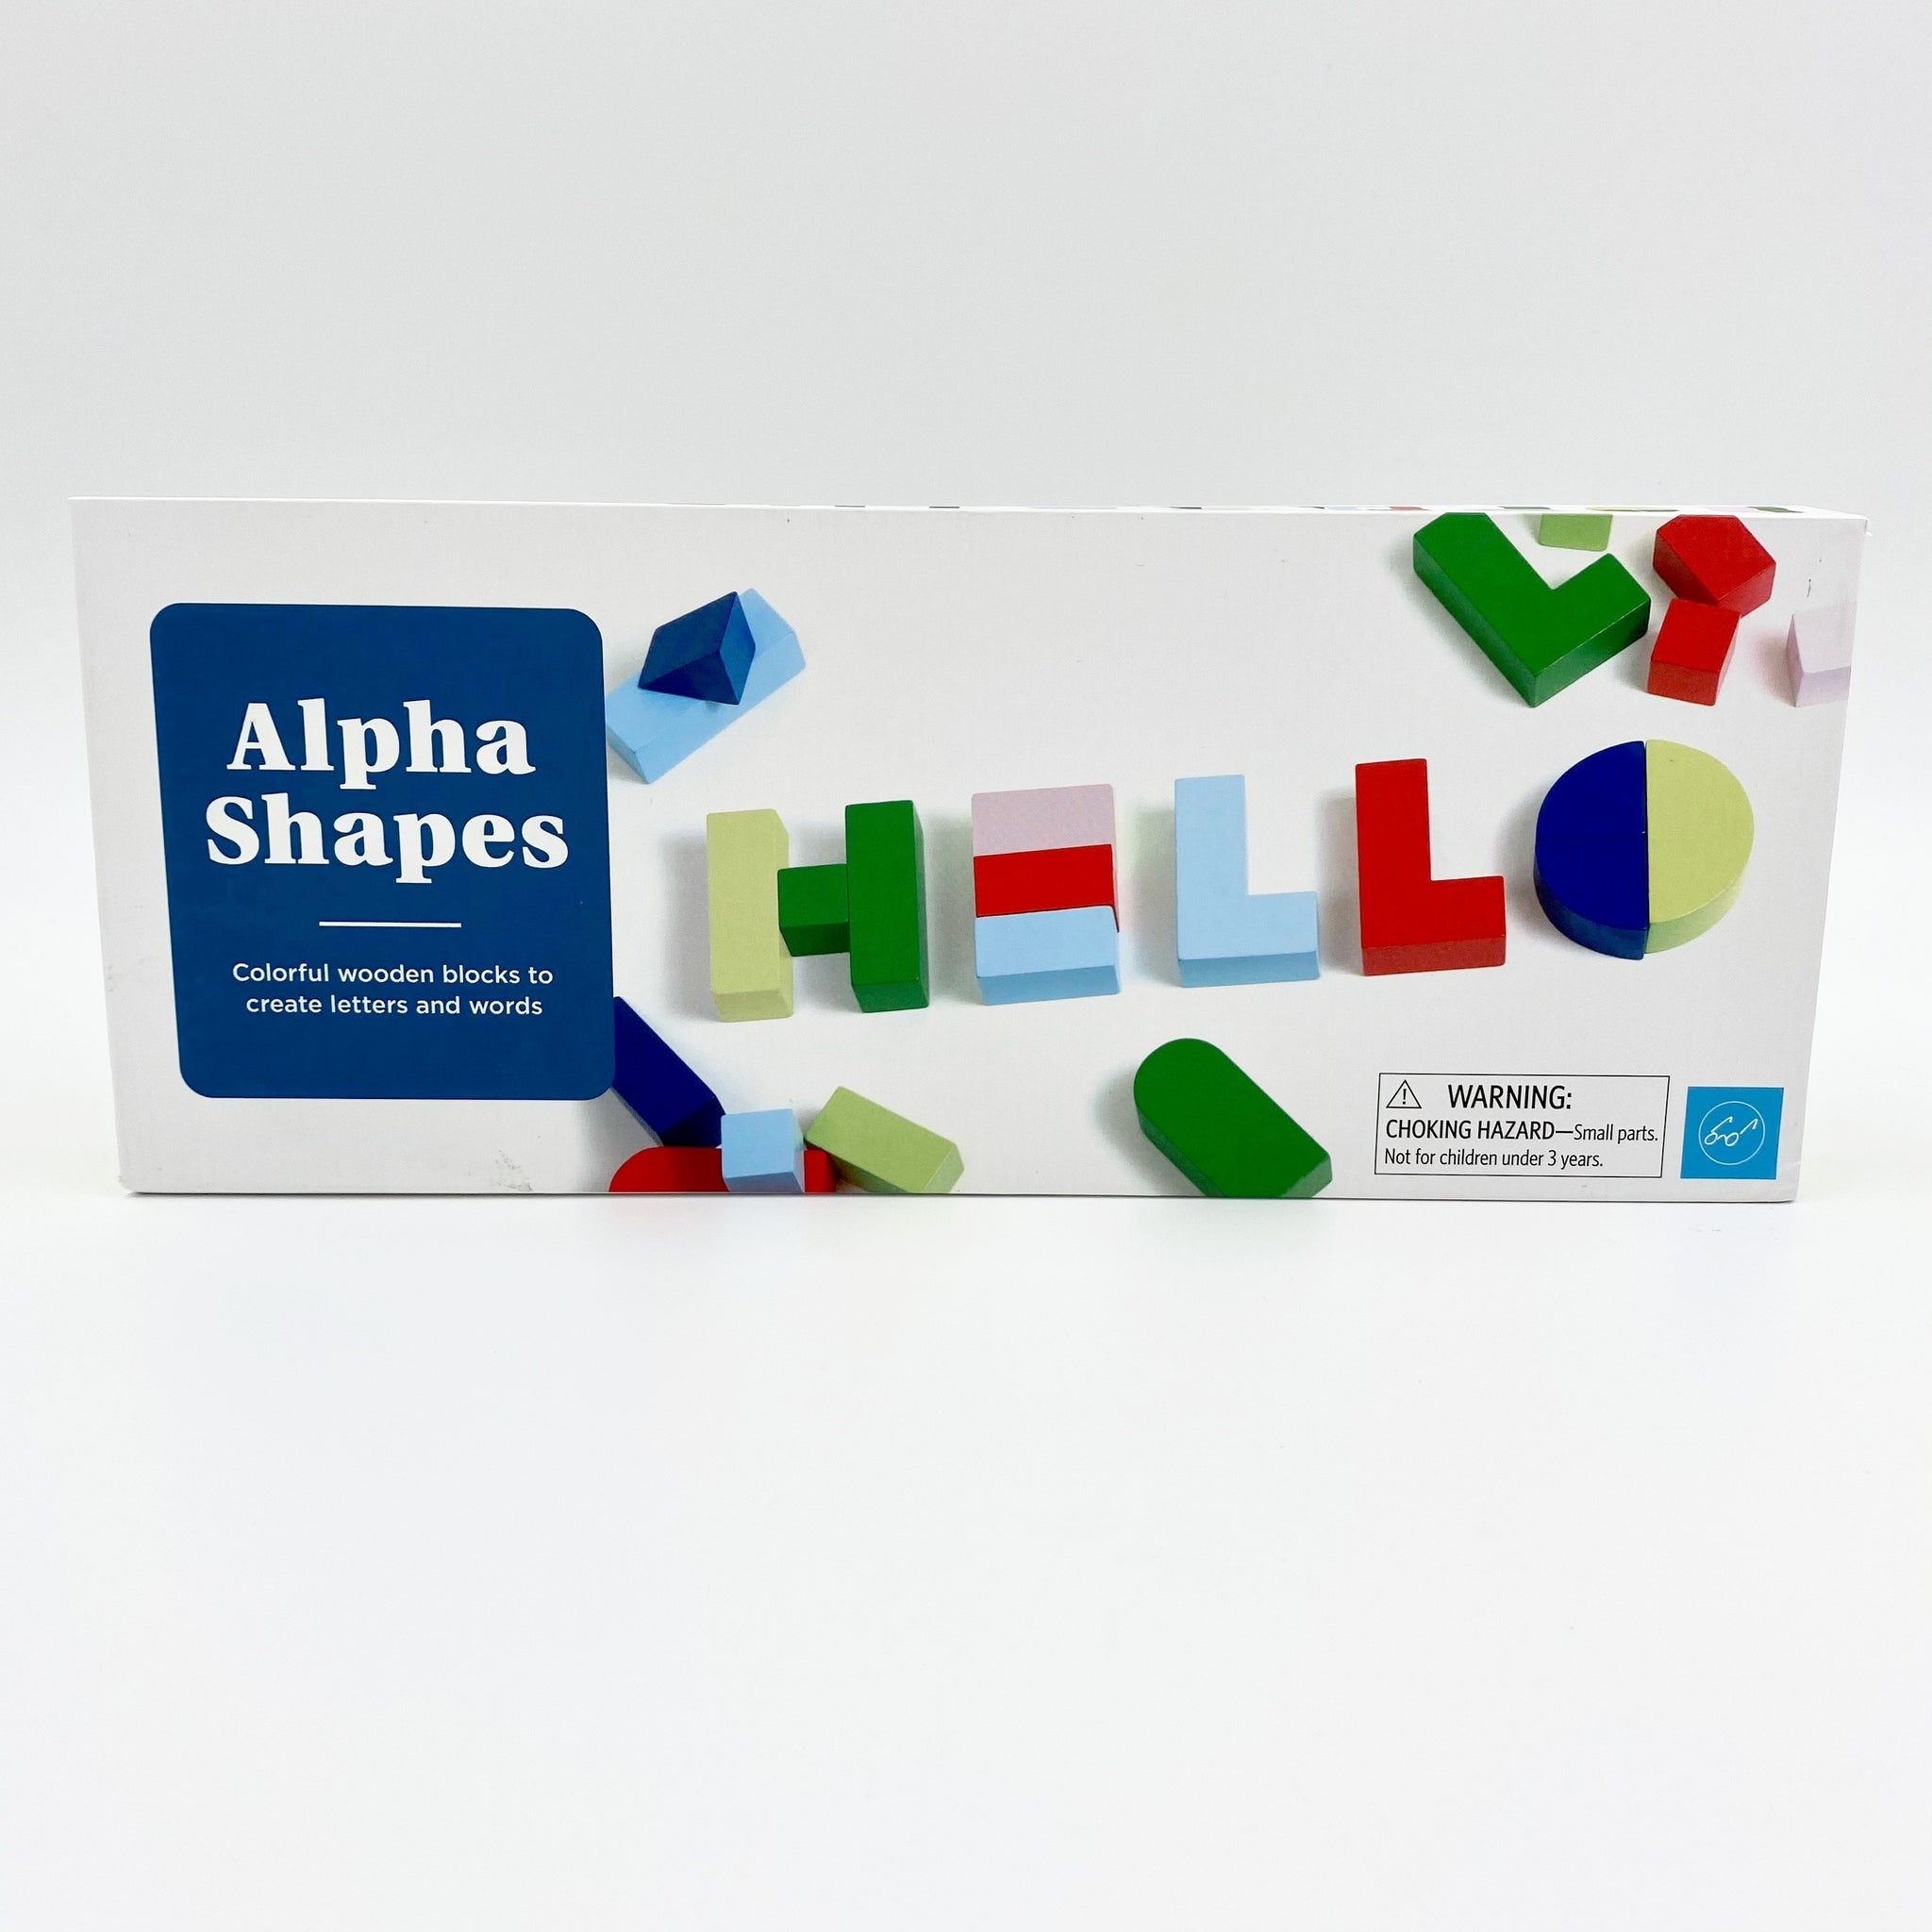 Alphashapes